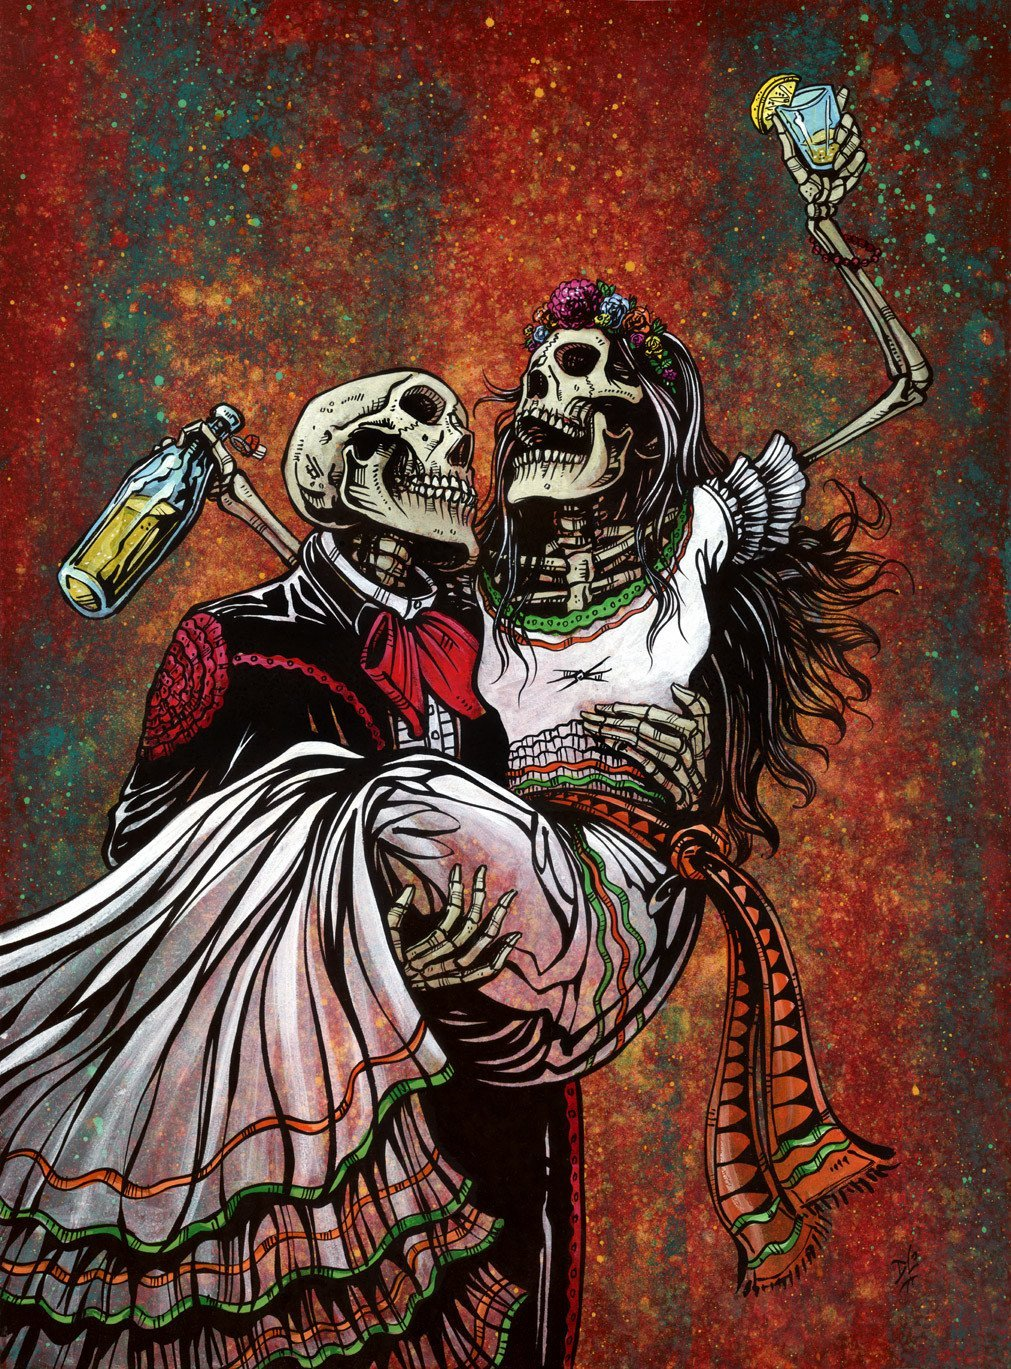 Bottoms Up by Day of the Dead Artist David Lozeau, Day of the Dead Art, Dia de los Muertos Art, Dia de los Muertos Artist